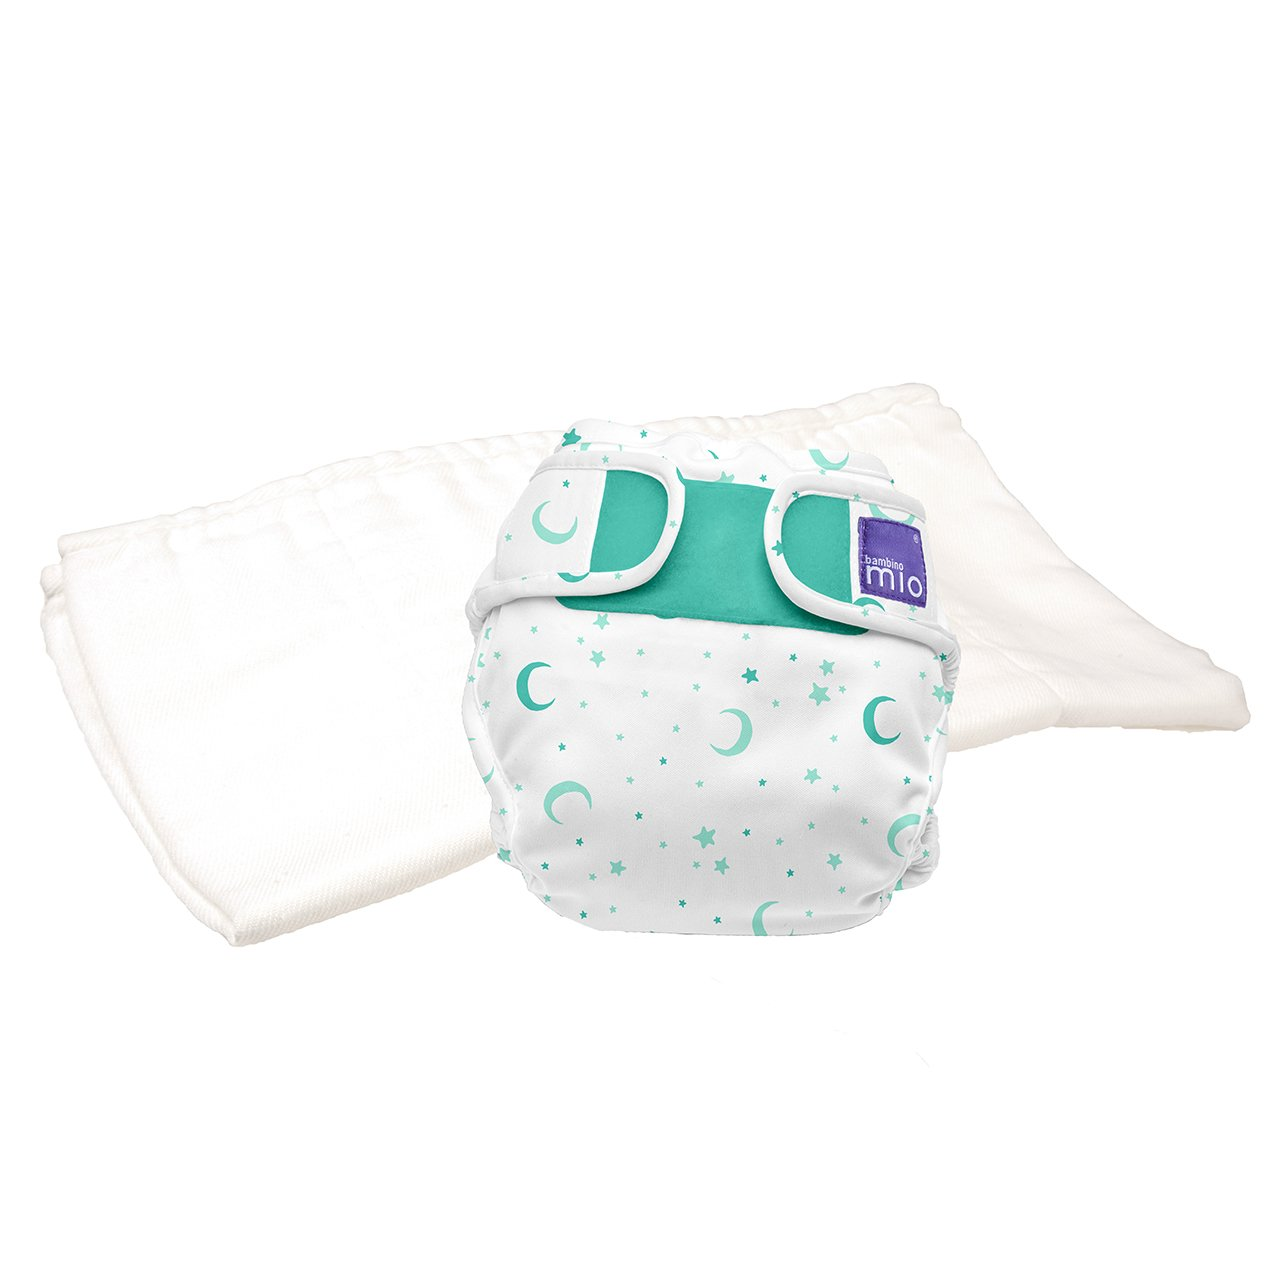 Bambino Mio, Miosoft Cloth Diaper Trial Pack, Sweet Dreams, Size 2 (21lbs+)